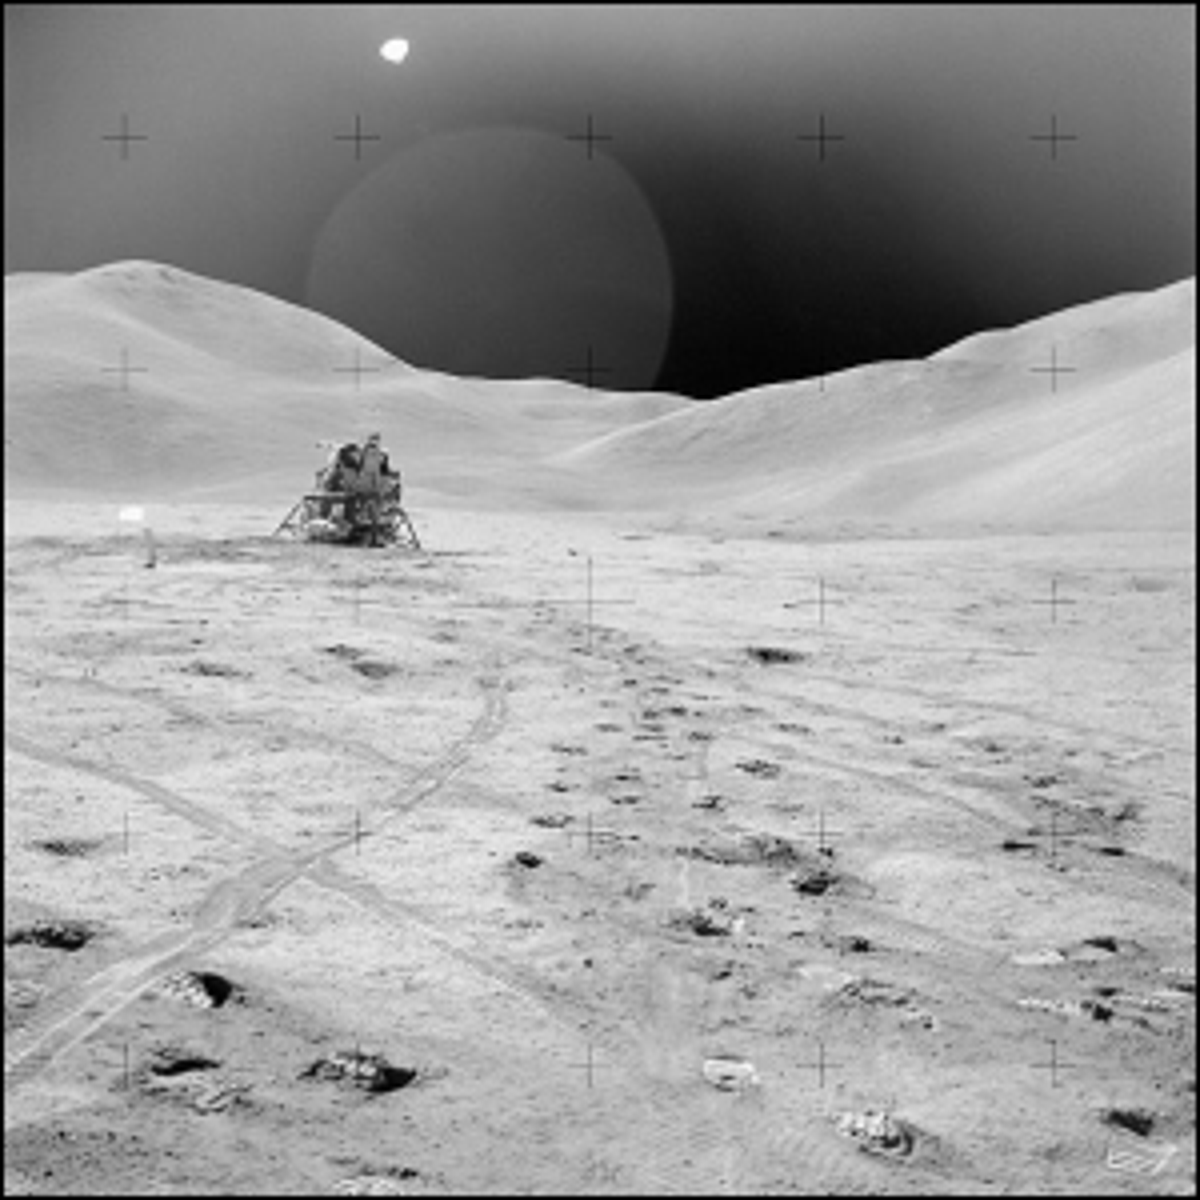 A photo of the lunar surface during the Apollo 15 mission.